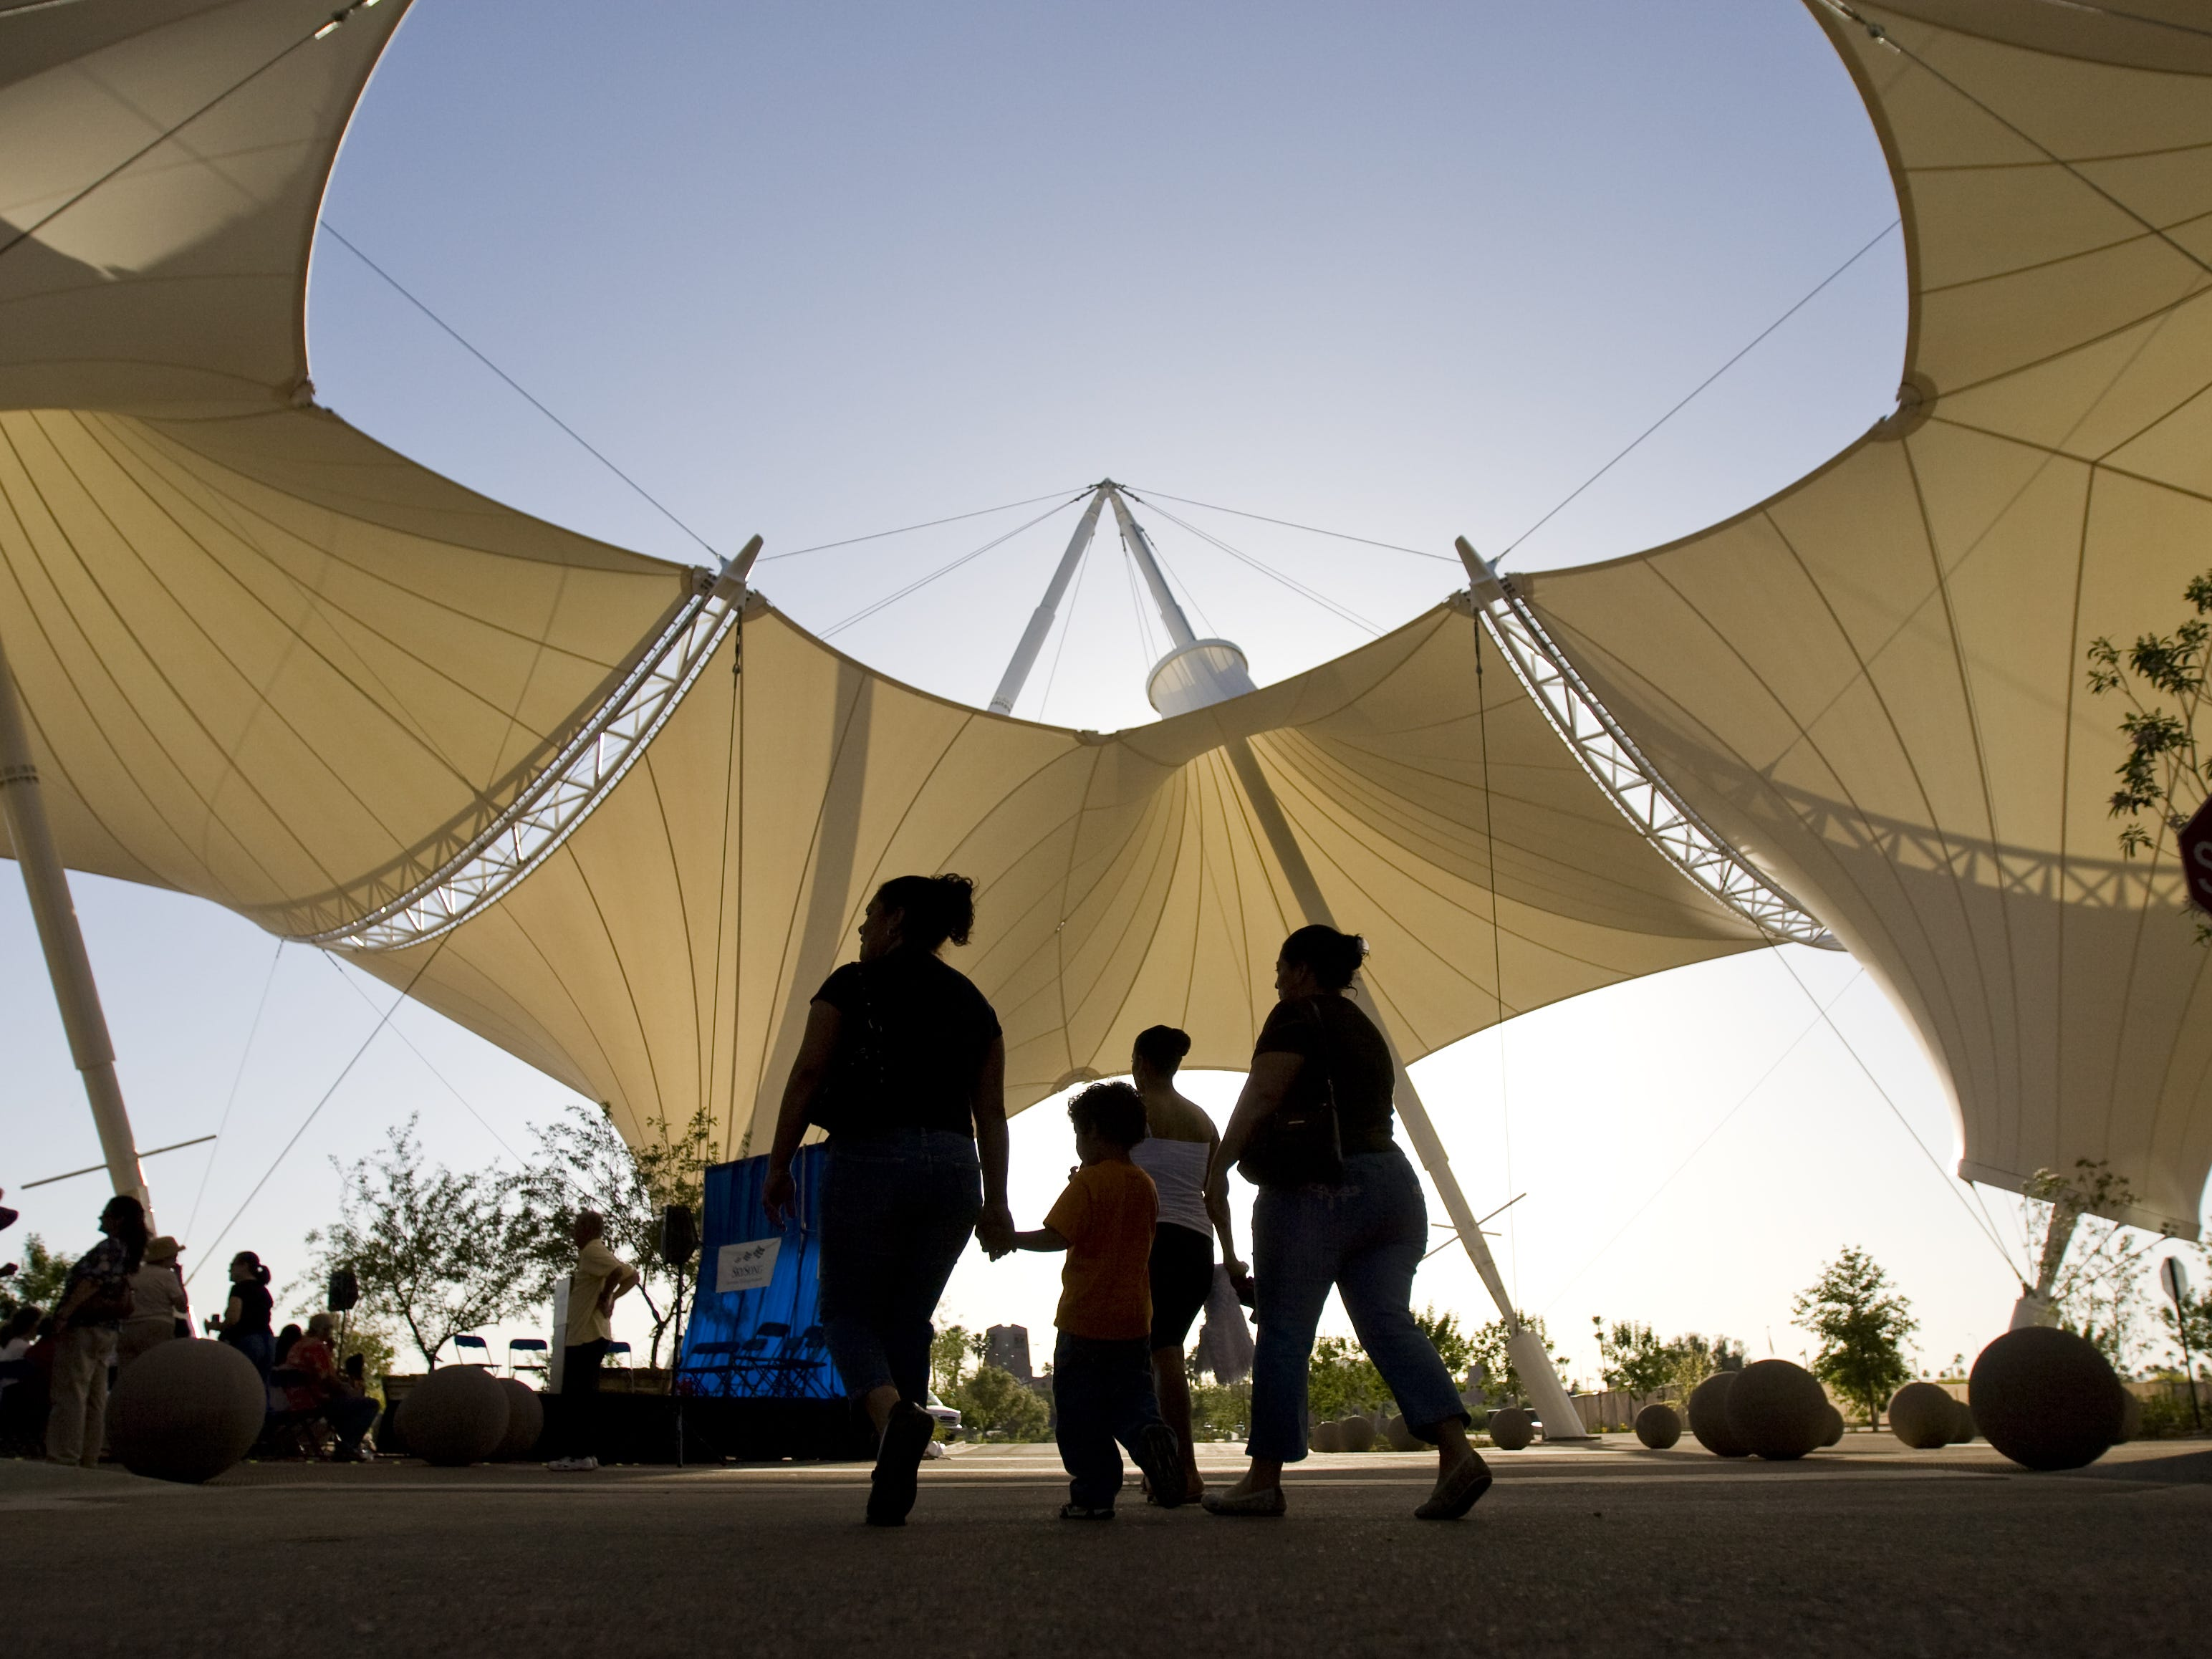 People walk under shade structures at SkySong Center at the ASU Scottsdale Innovation Center during dedication ceremonies in Scottsdale on April 29, 2009. In 2008, after two years of construction, the first two buildings at SkySong opened.